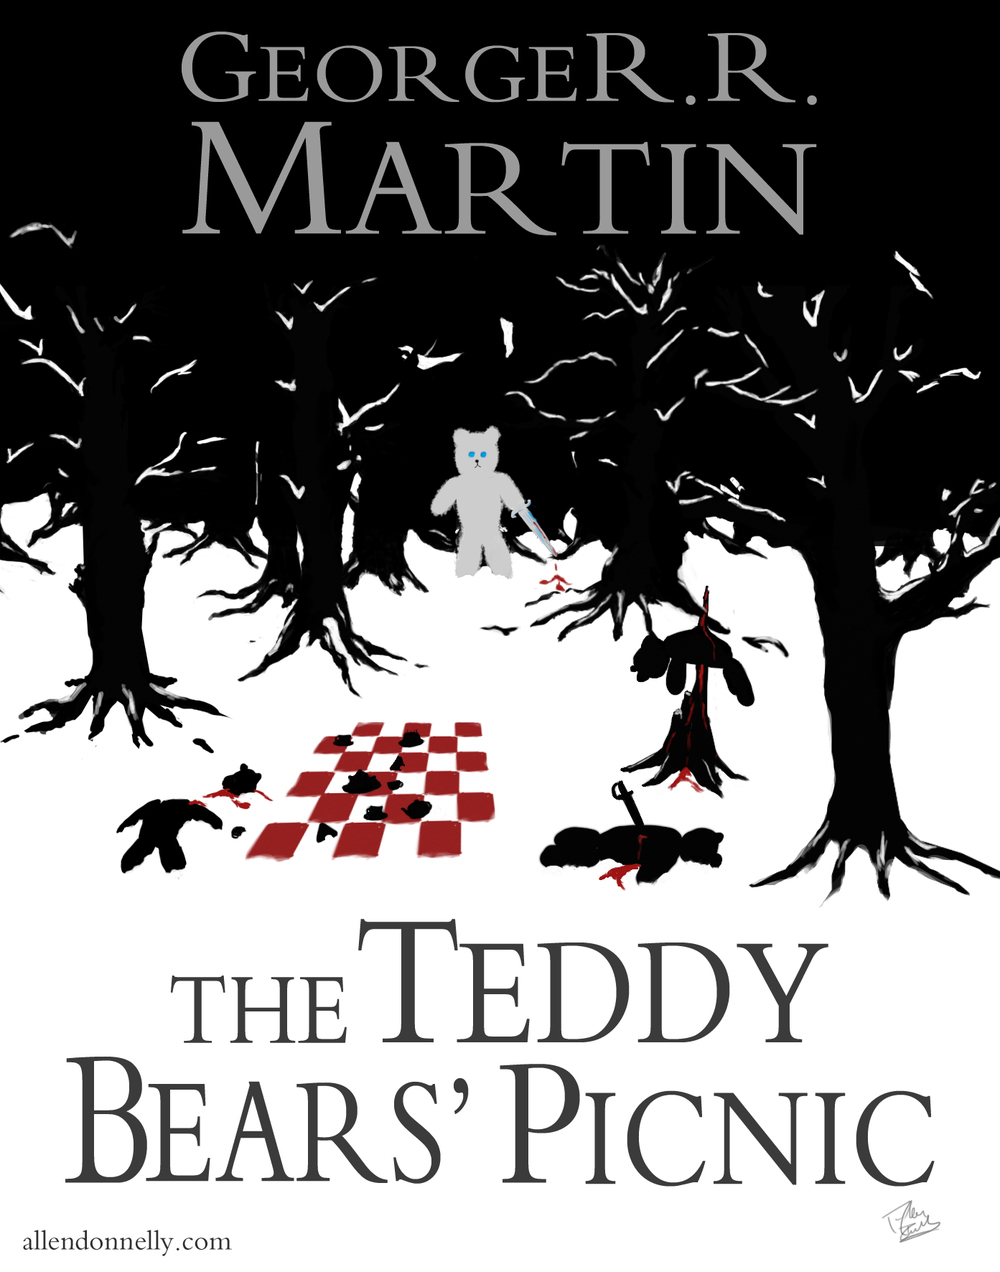 The Red Picnic